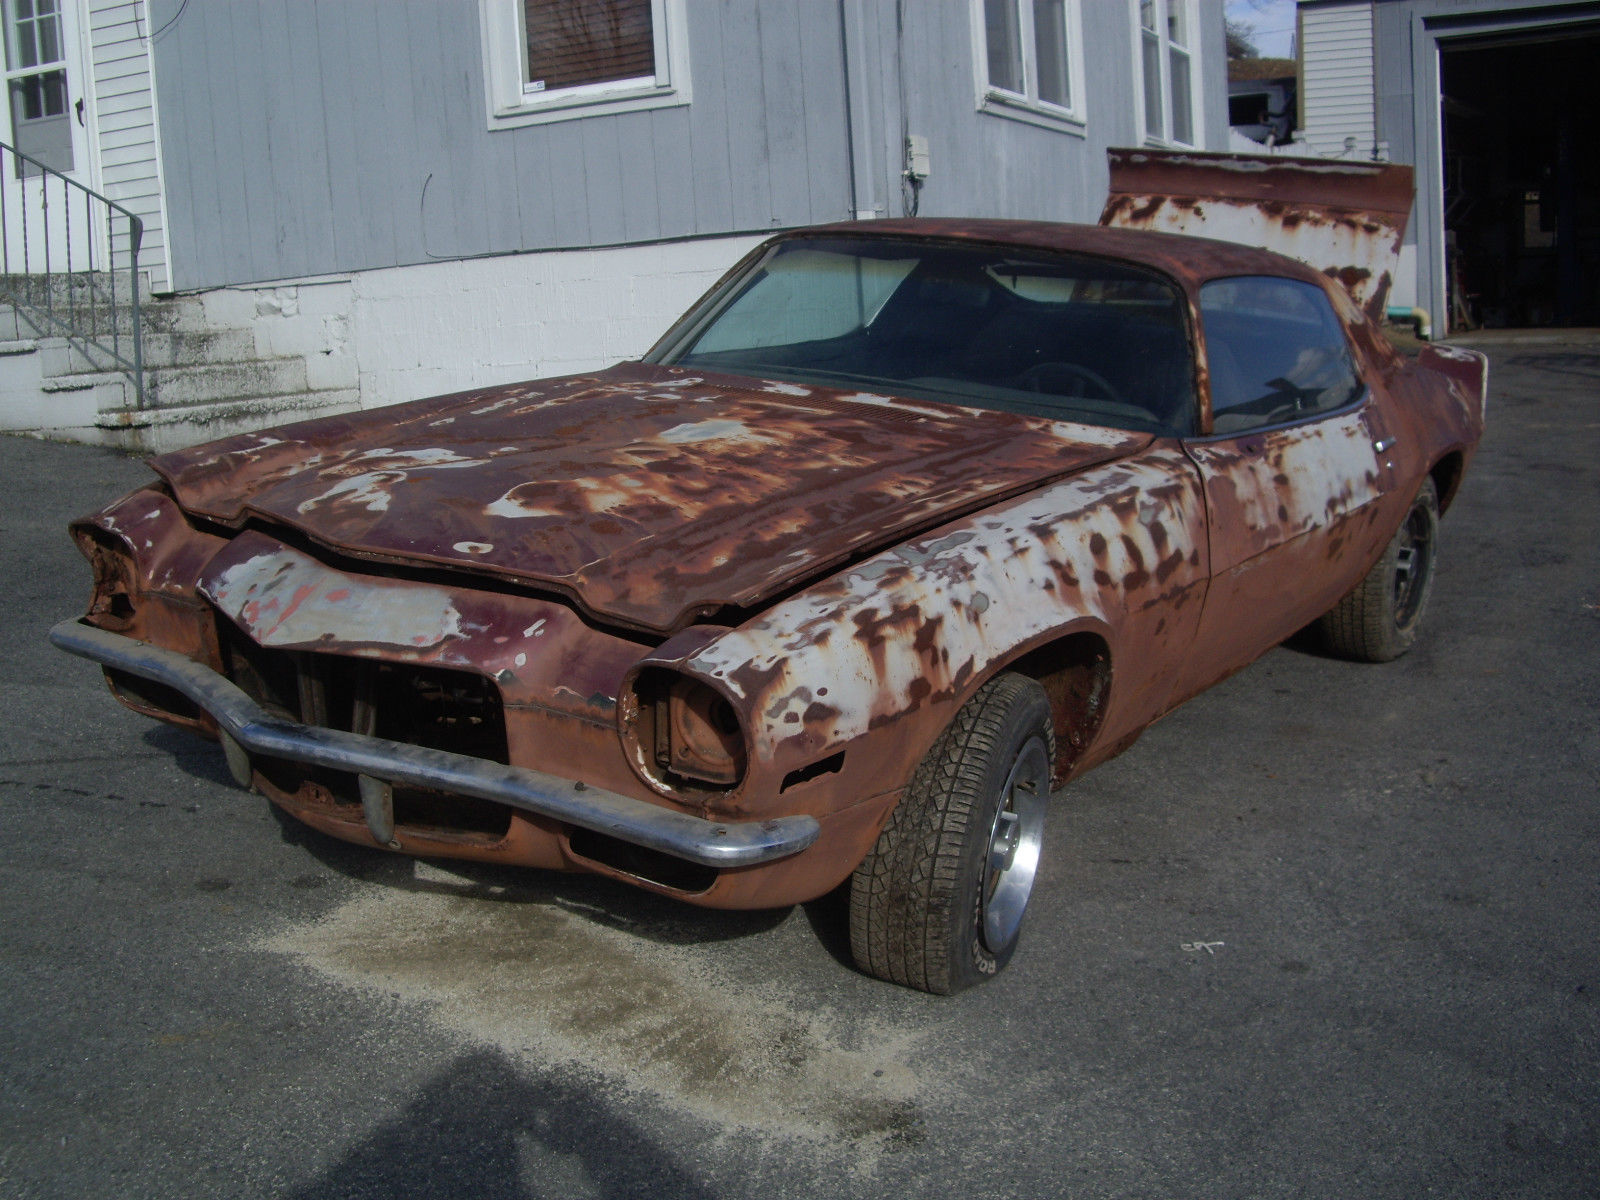 1973 Camaro Type LT Z28 350 4 Speed Numbers Matching Barn Find Project Car